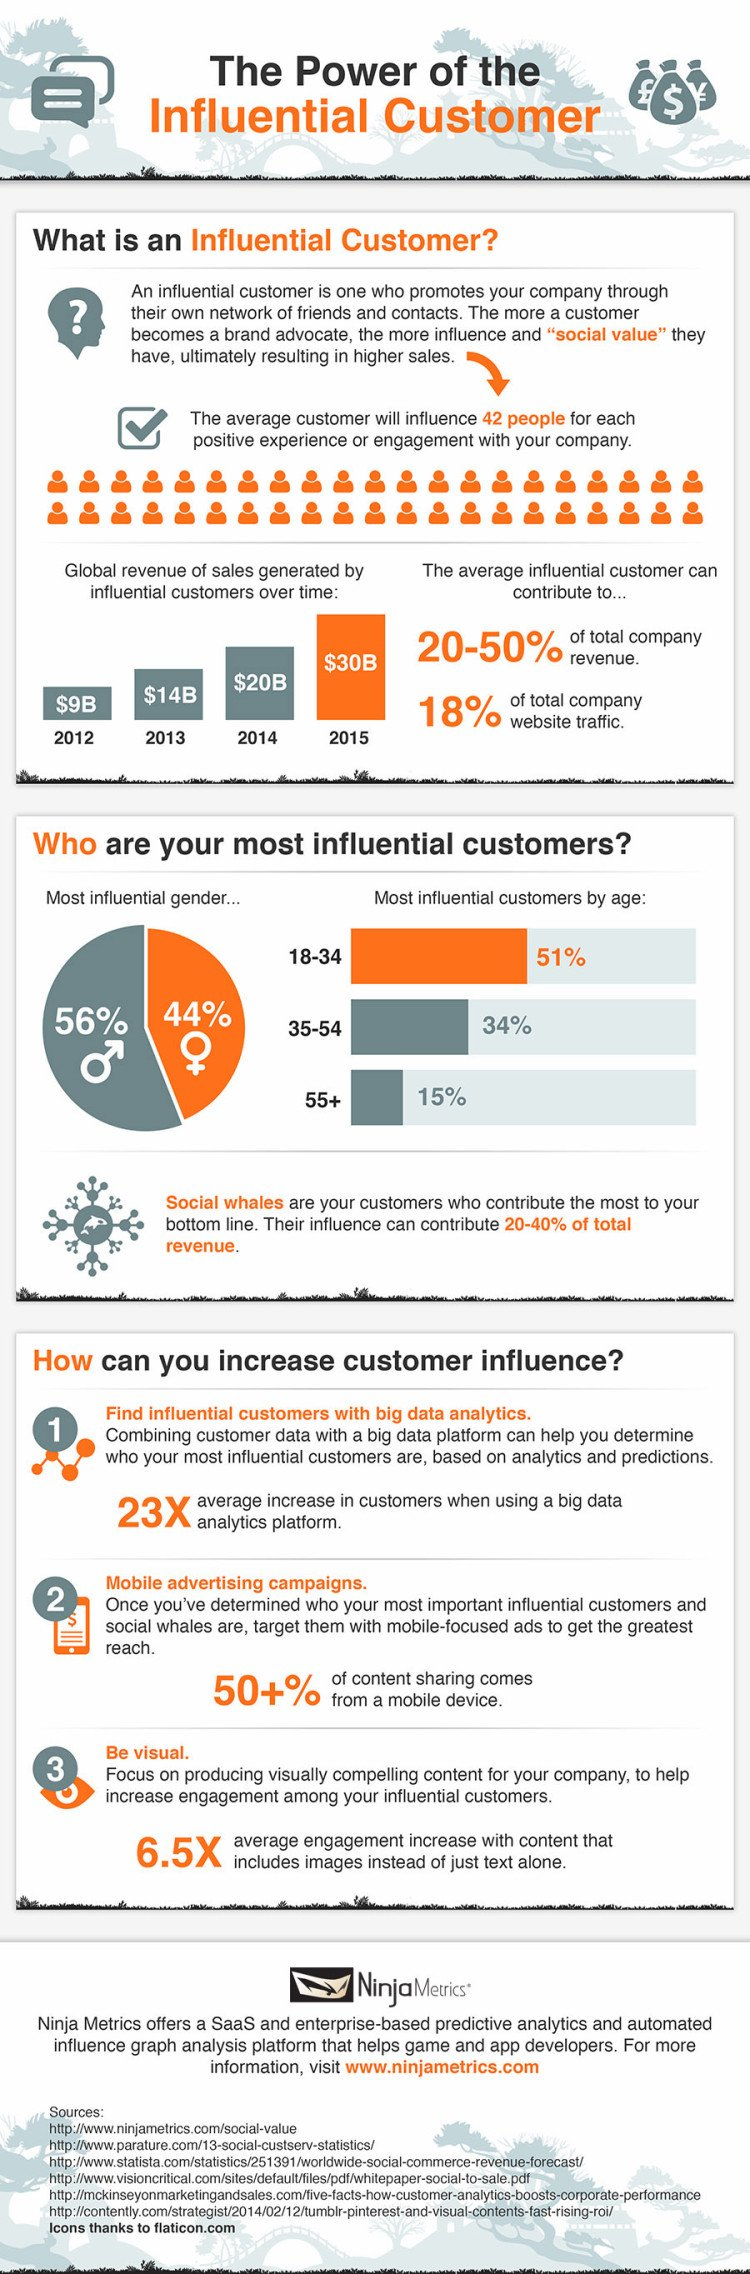 The Power of the Influential Customer [Infographic]